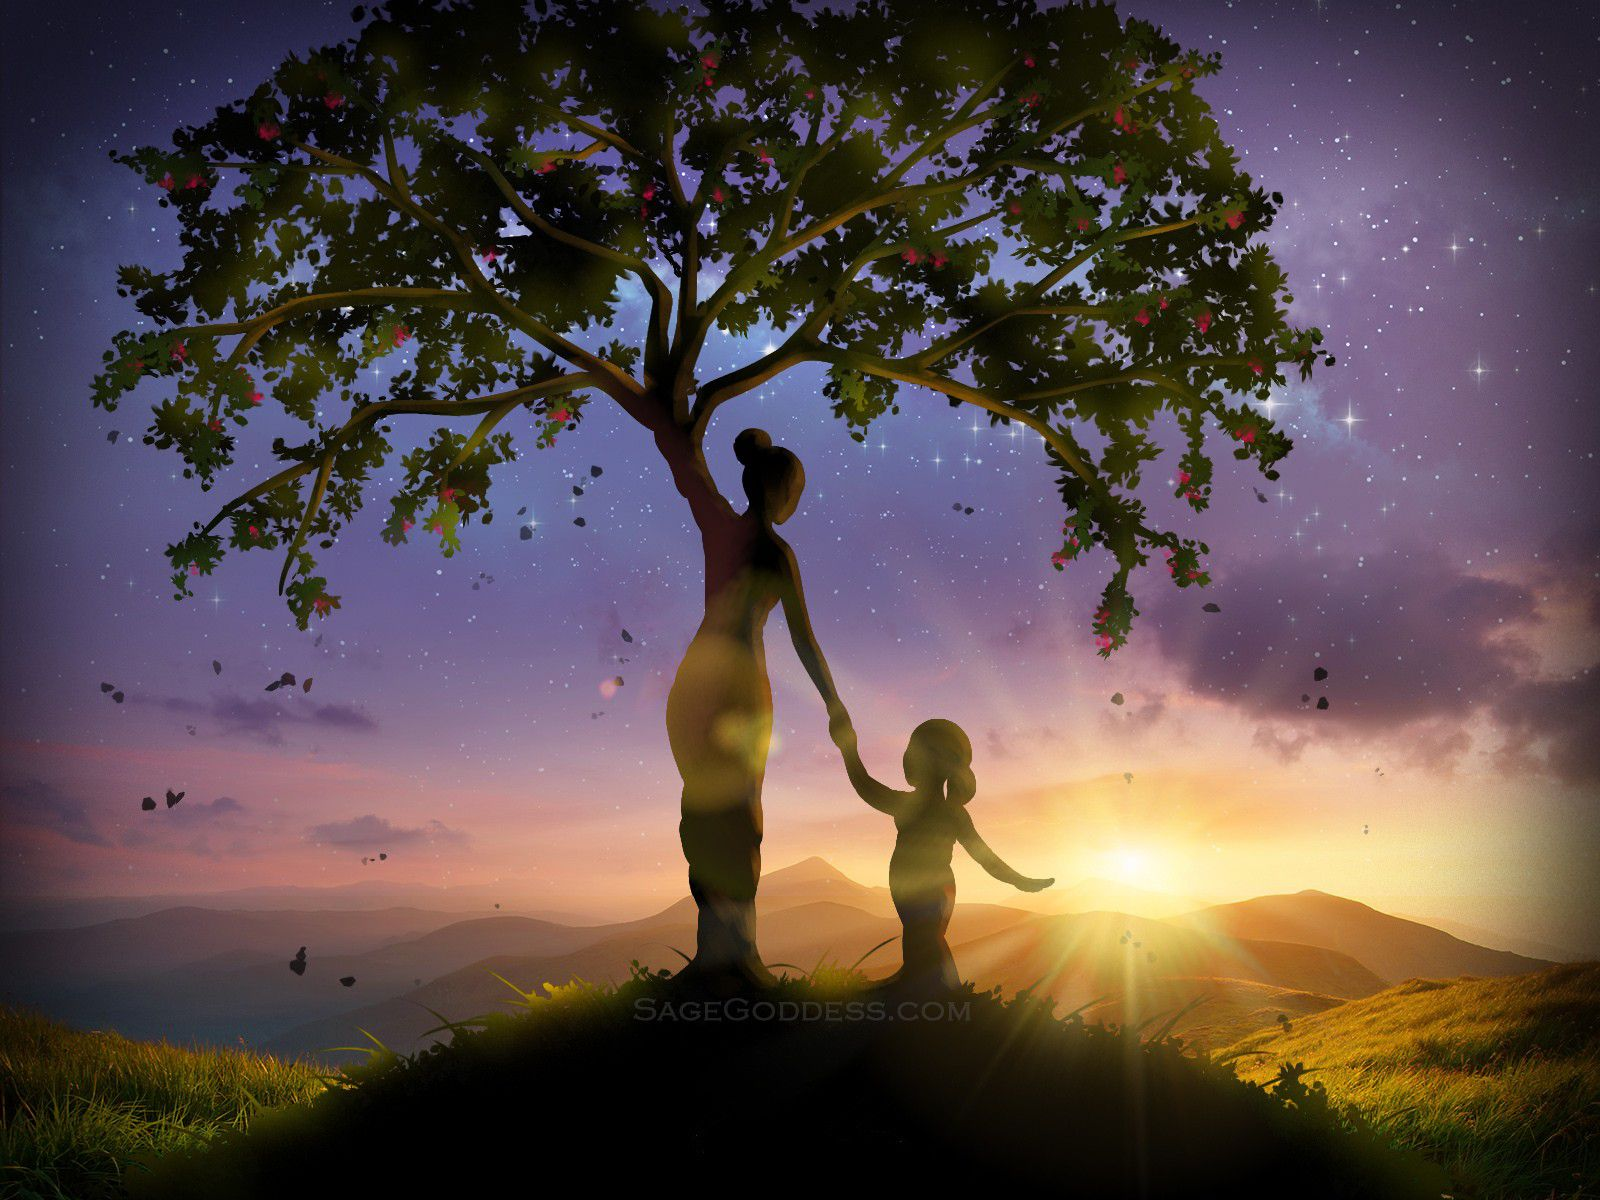 Custom Sage Goddess Downloadable Tree of Life Wallpaper 1600x1200